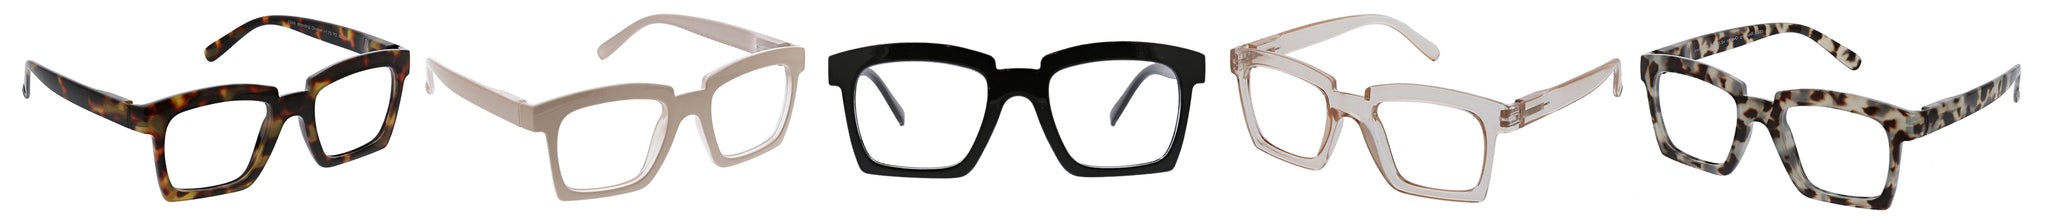 Peepers Standing Ovation blue light reading glasses in tortoise, taupe, black, tan, and gray tortoise